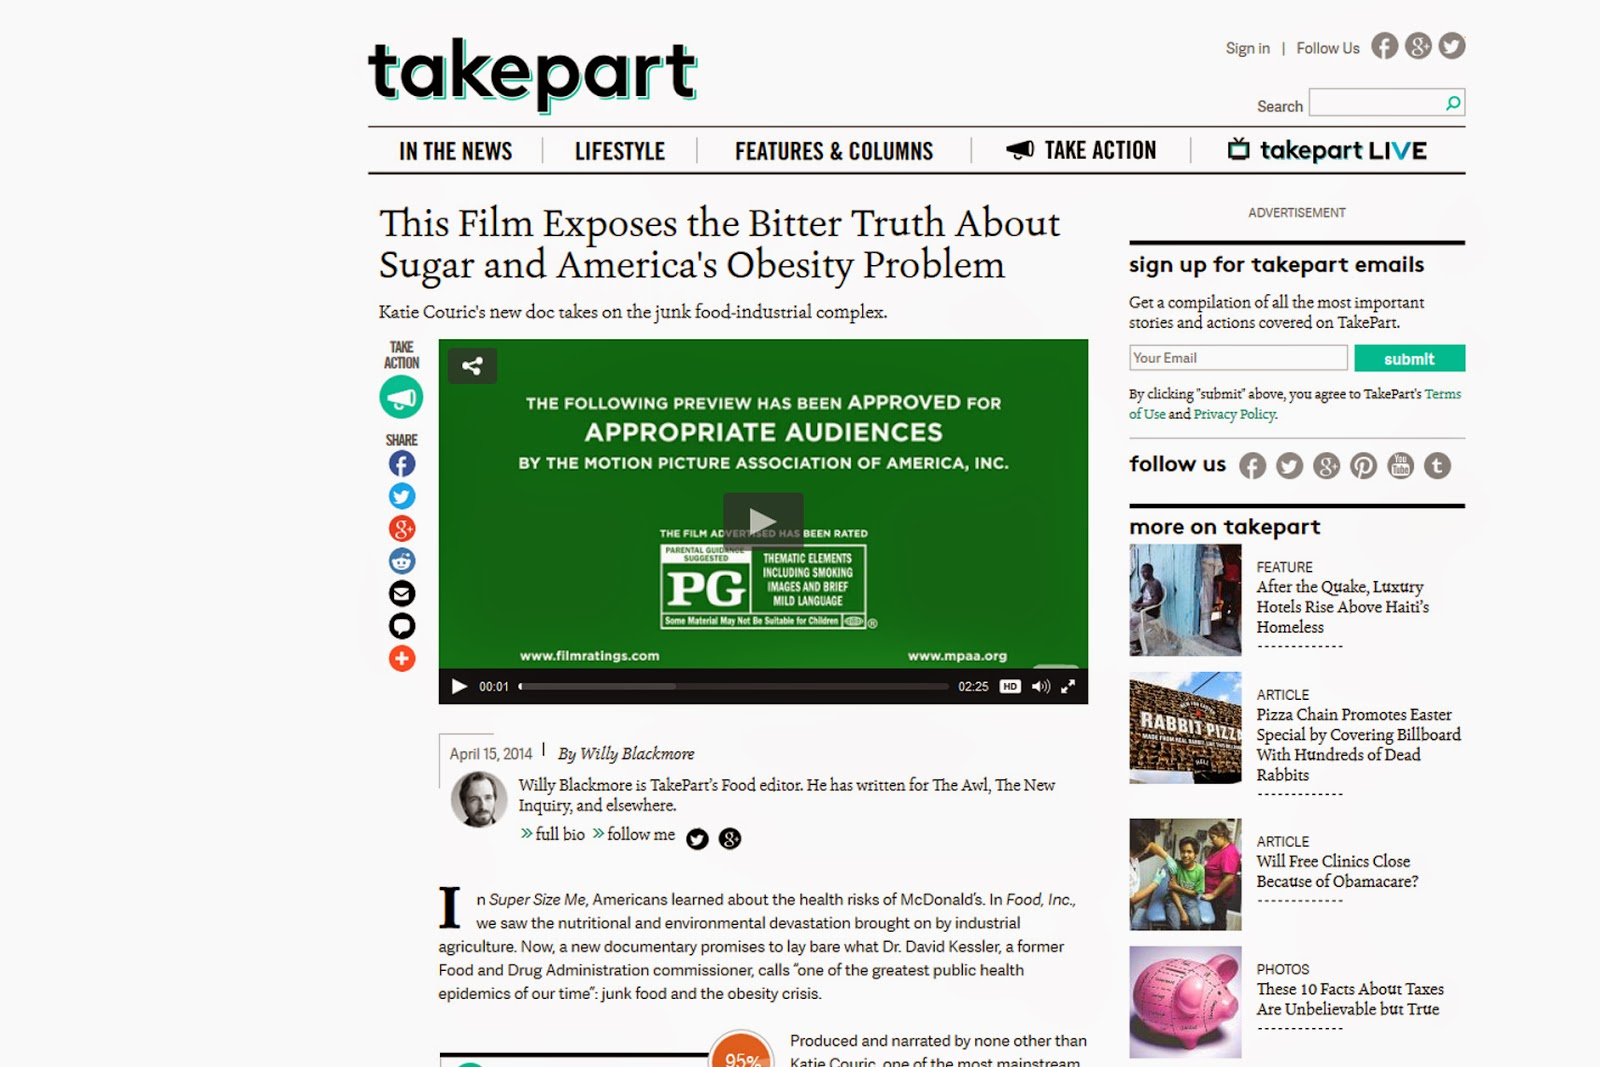 http://www.takepart.com/video/2014/04/15/fed-up-trailer?cmpid=longt